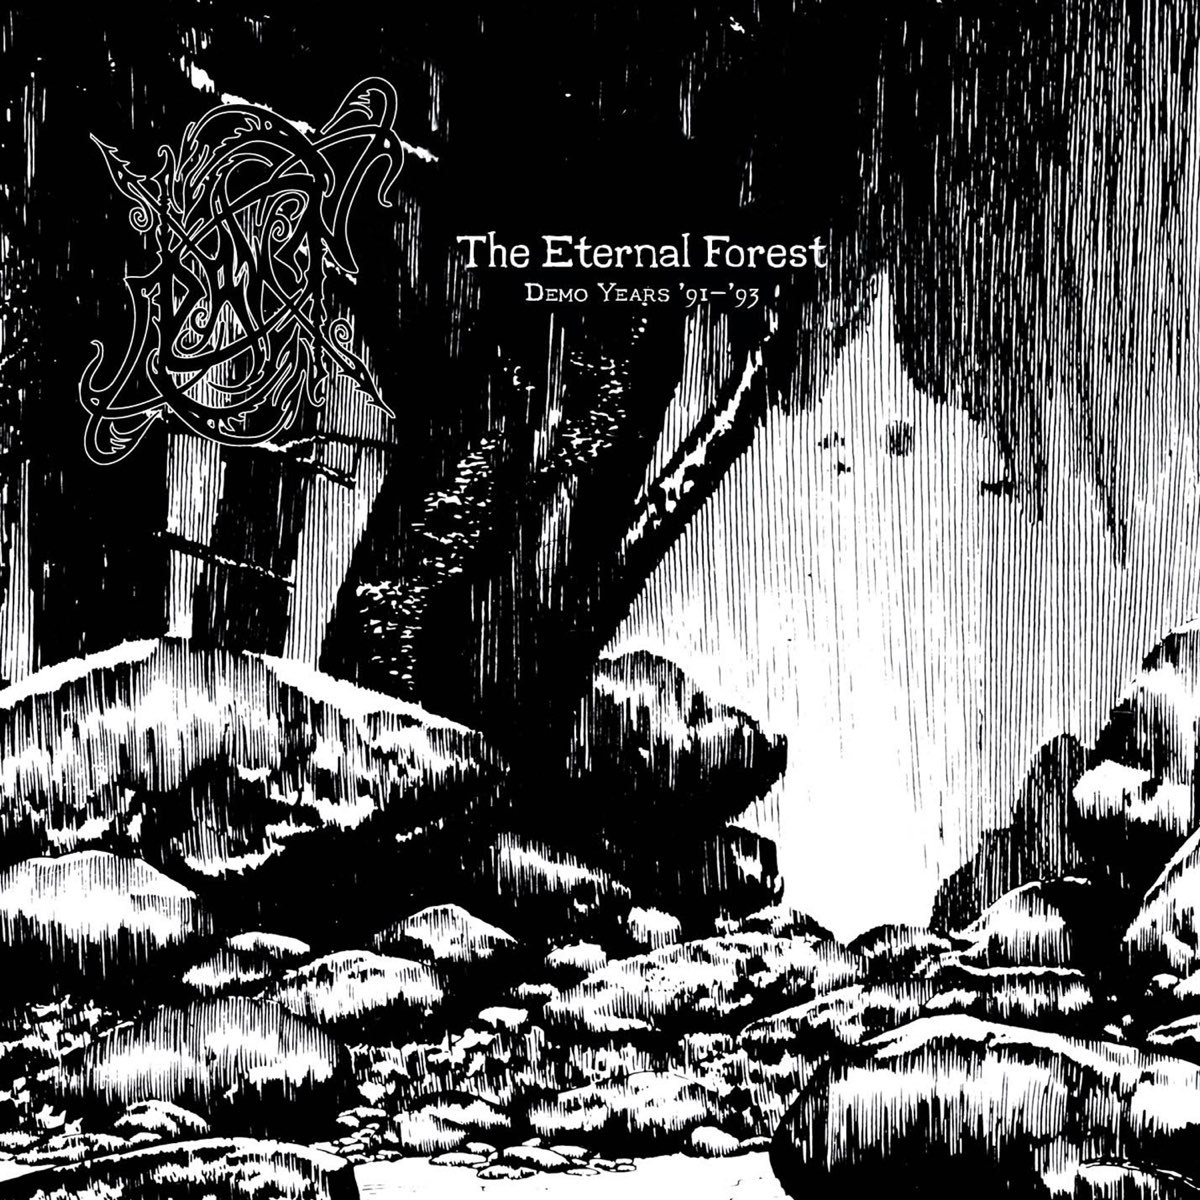 Review for Dawn - The Eternal Forest (Demo Years '91-'93)